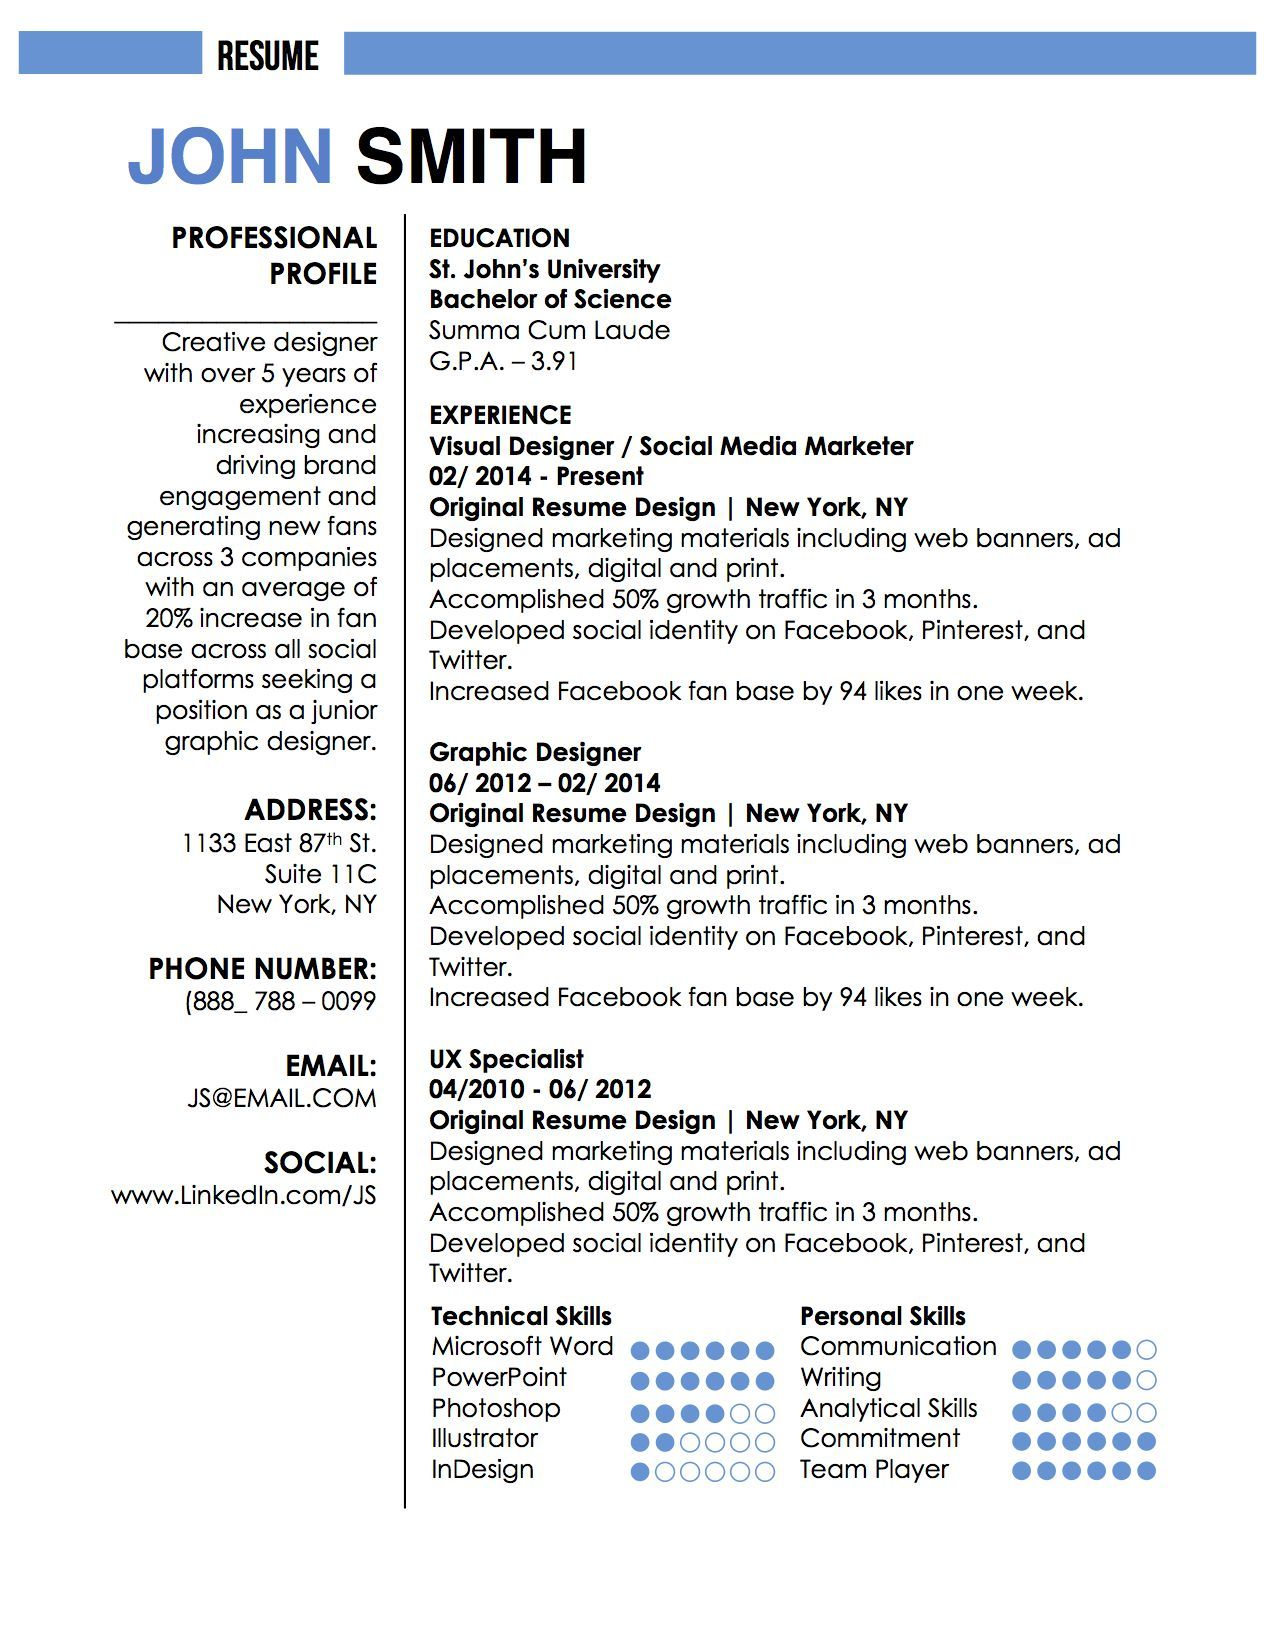 neuva smith professional cv resume template for microsoft word